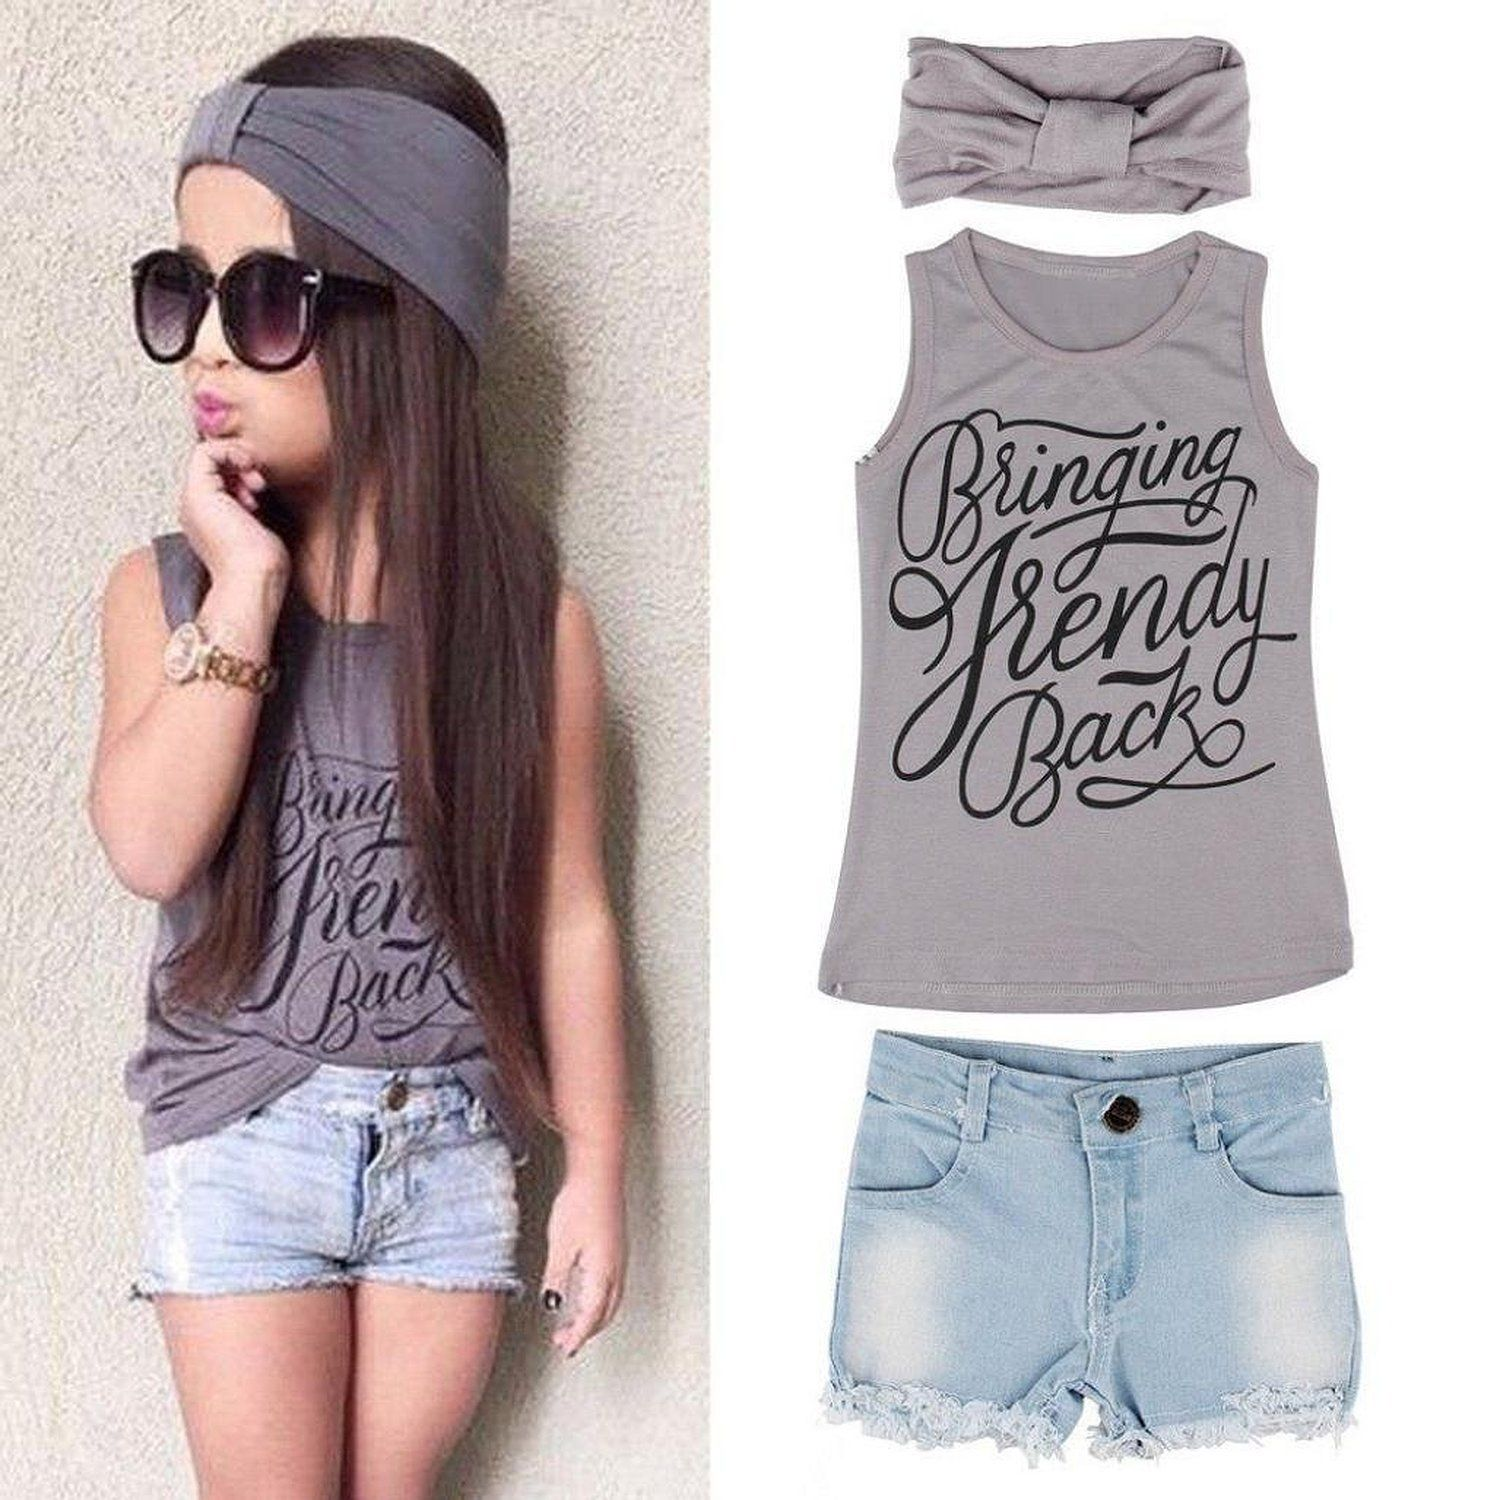 1fd59dfb60c7 Kids Girls Summer Cute Letters Print Vest Tops Denim Shorts Pants with  Headband. Material